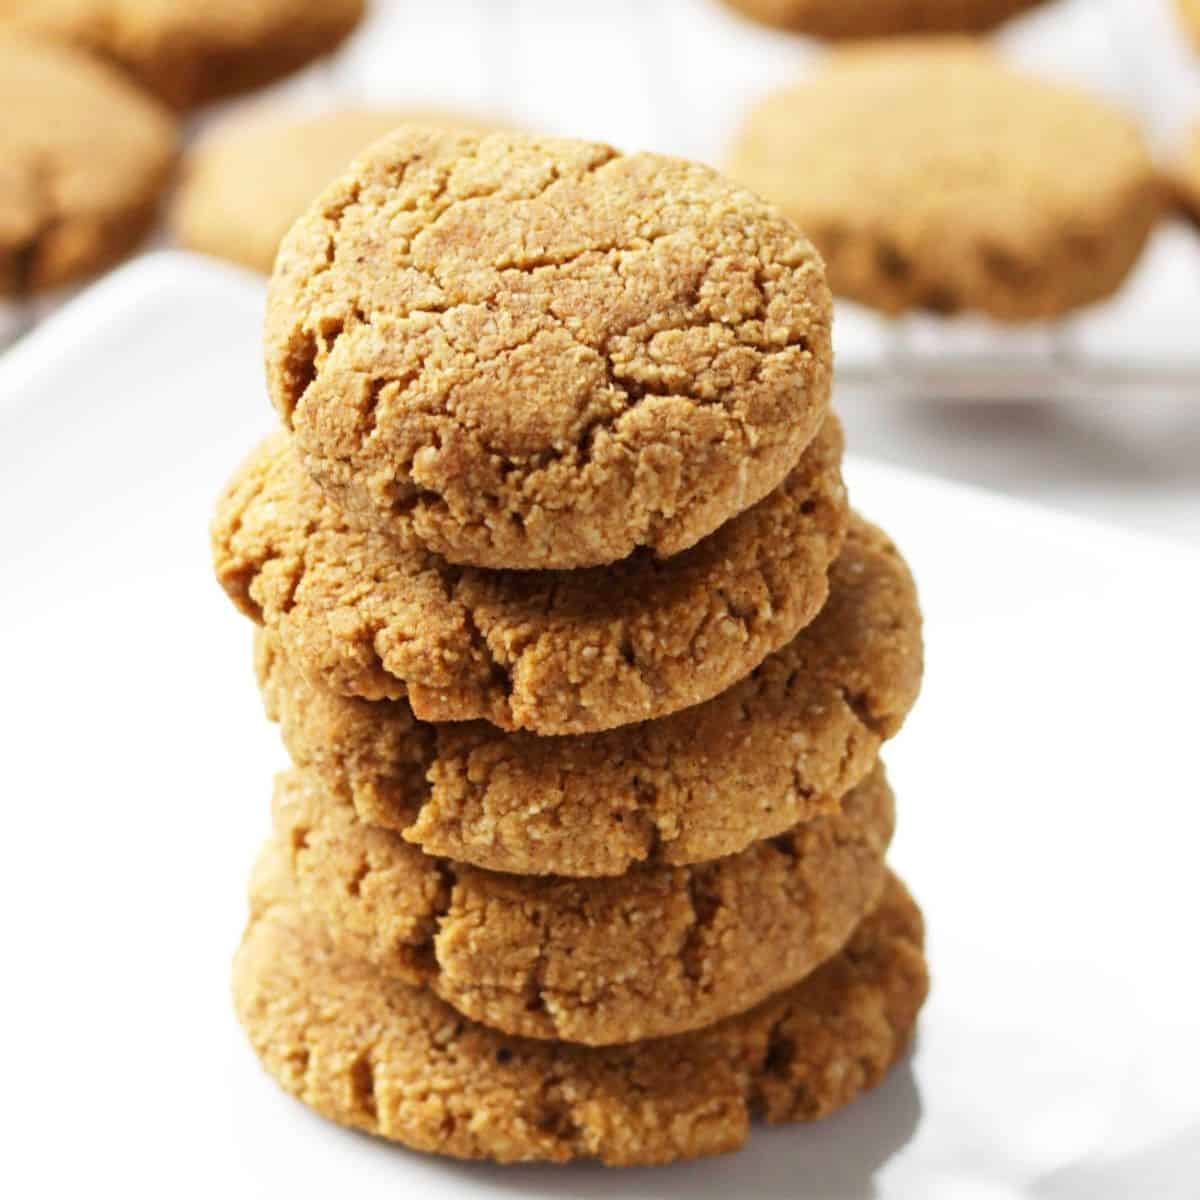 stack of thick, golden cookies on white plate